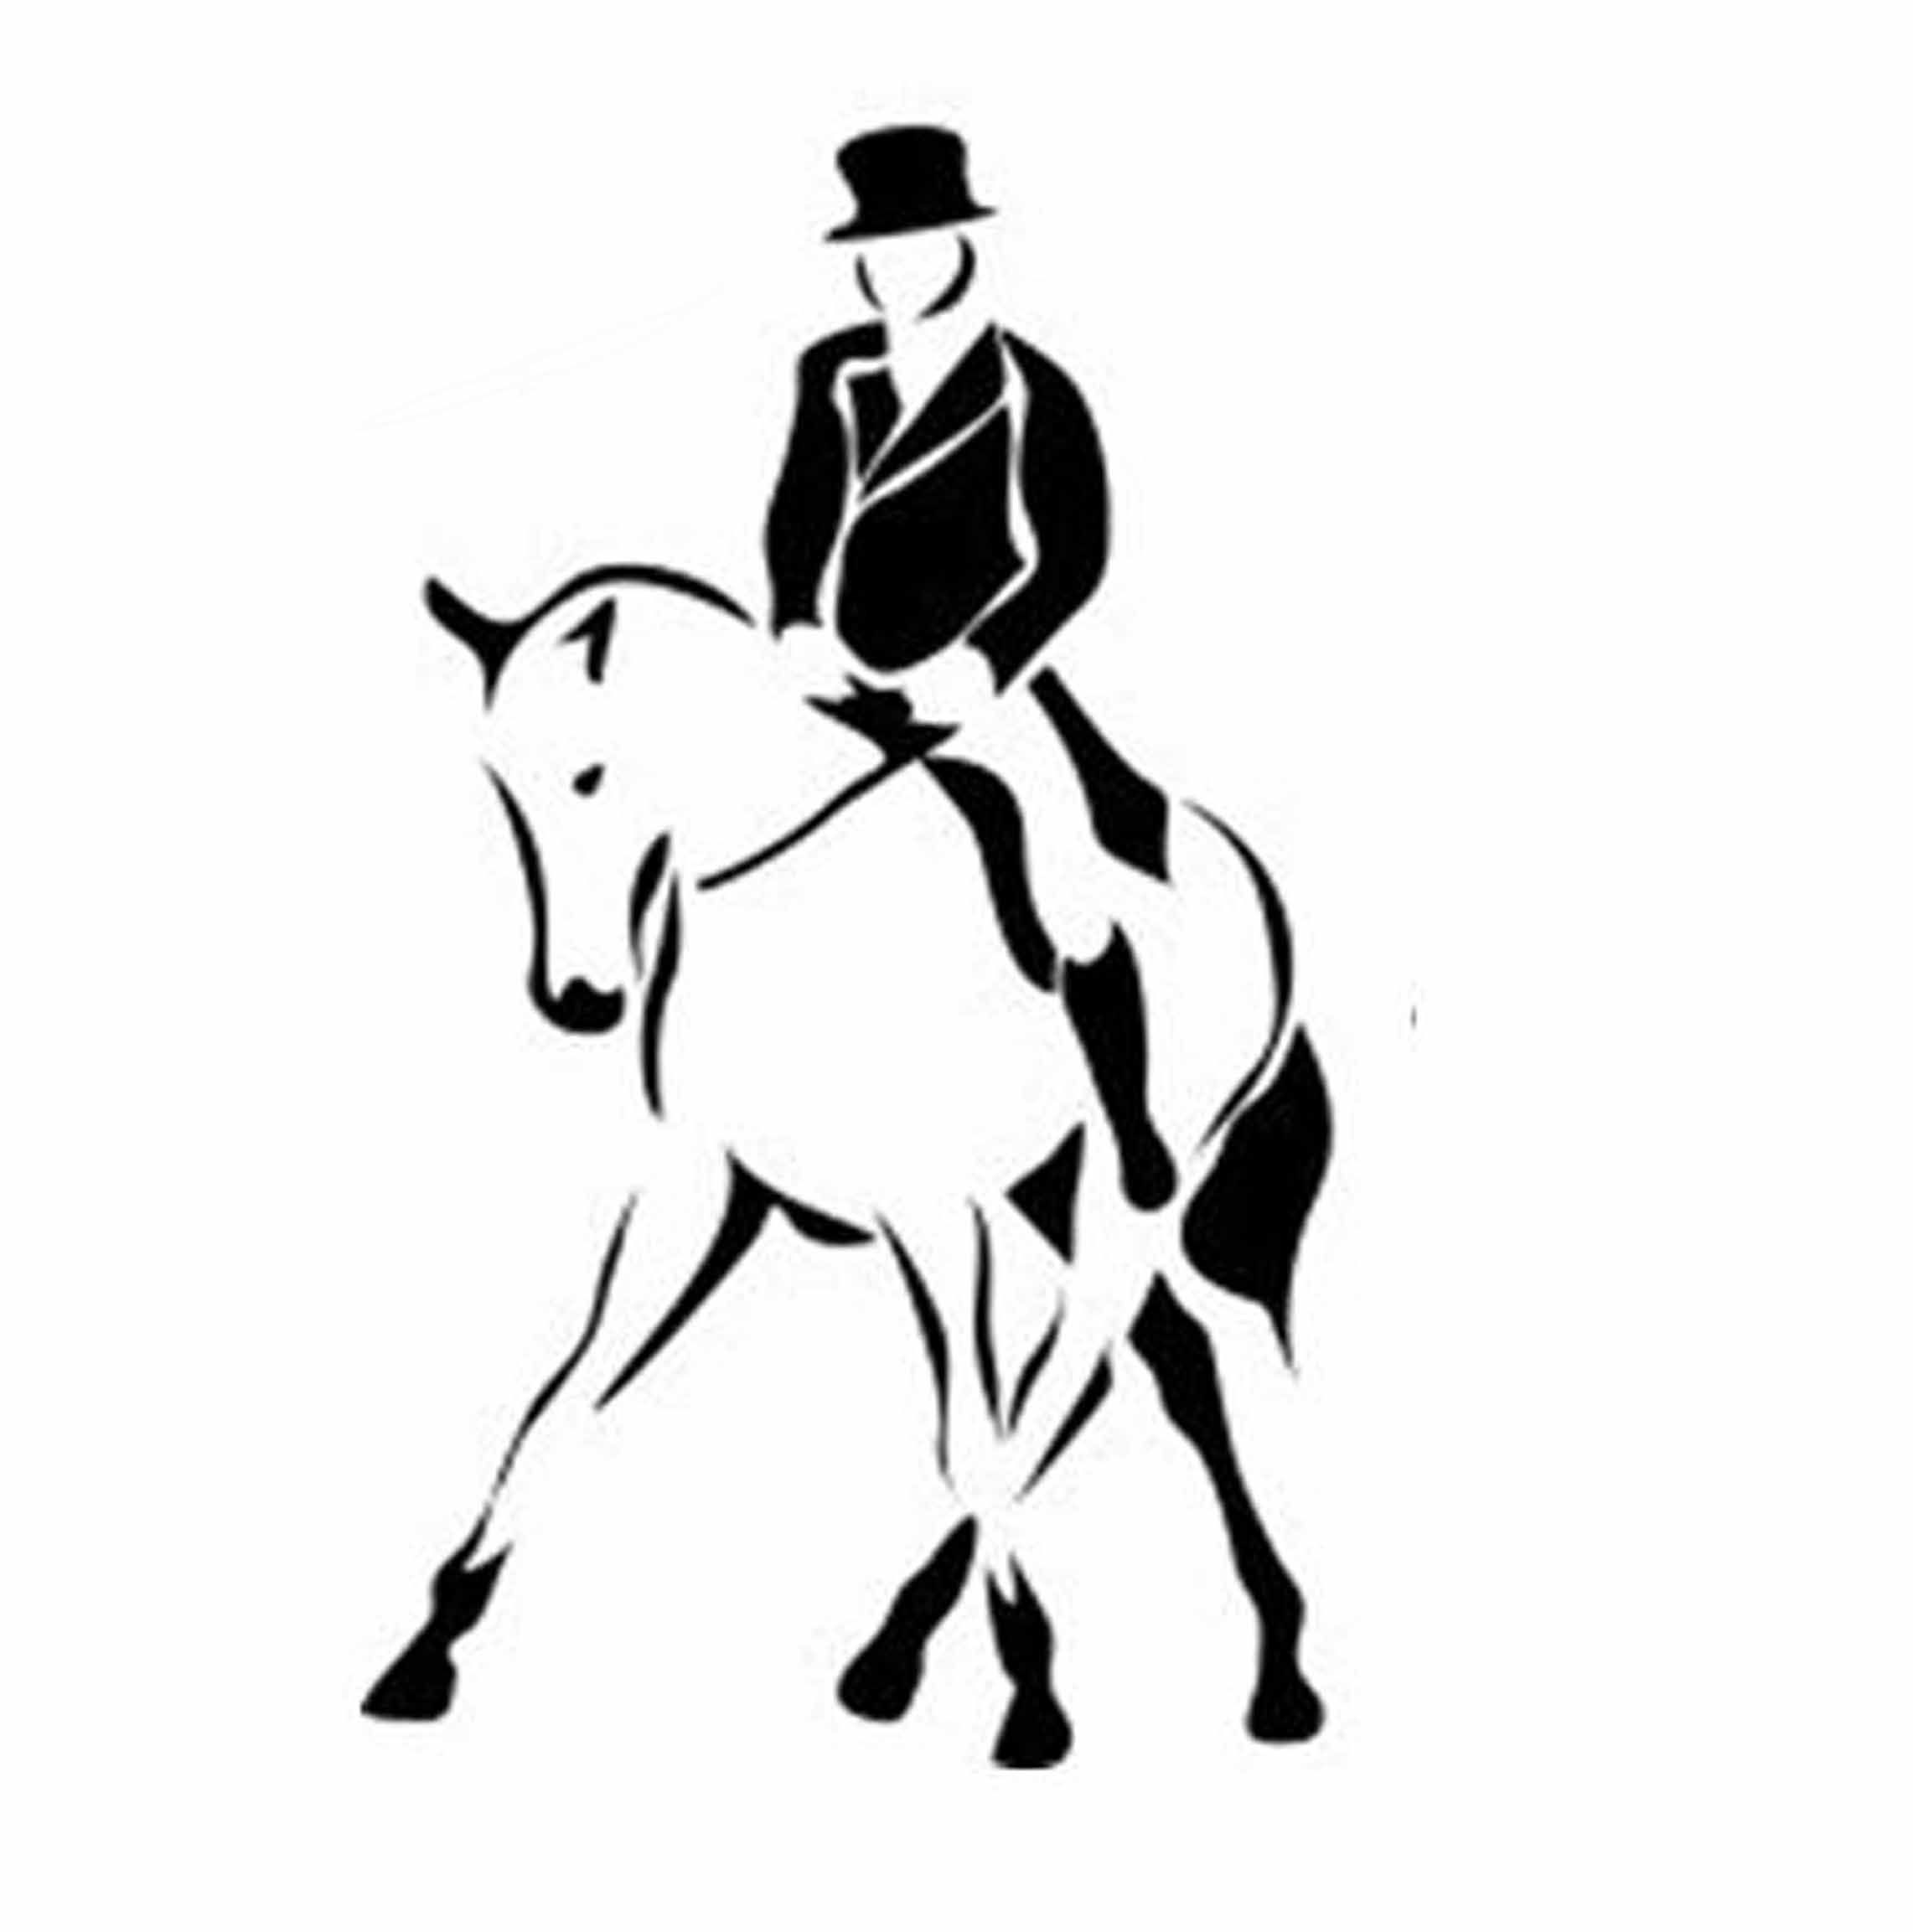 Western dressage clipart picture library library Dressage Clip Art   Clasby Creations Inspirations in 2019 ... picture library library